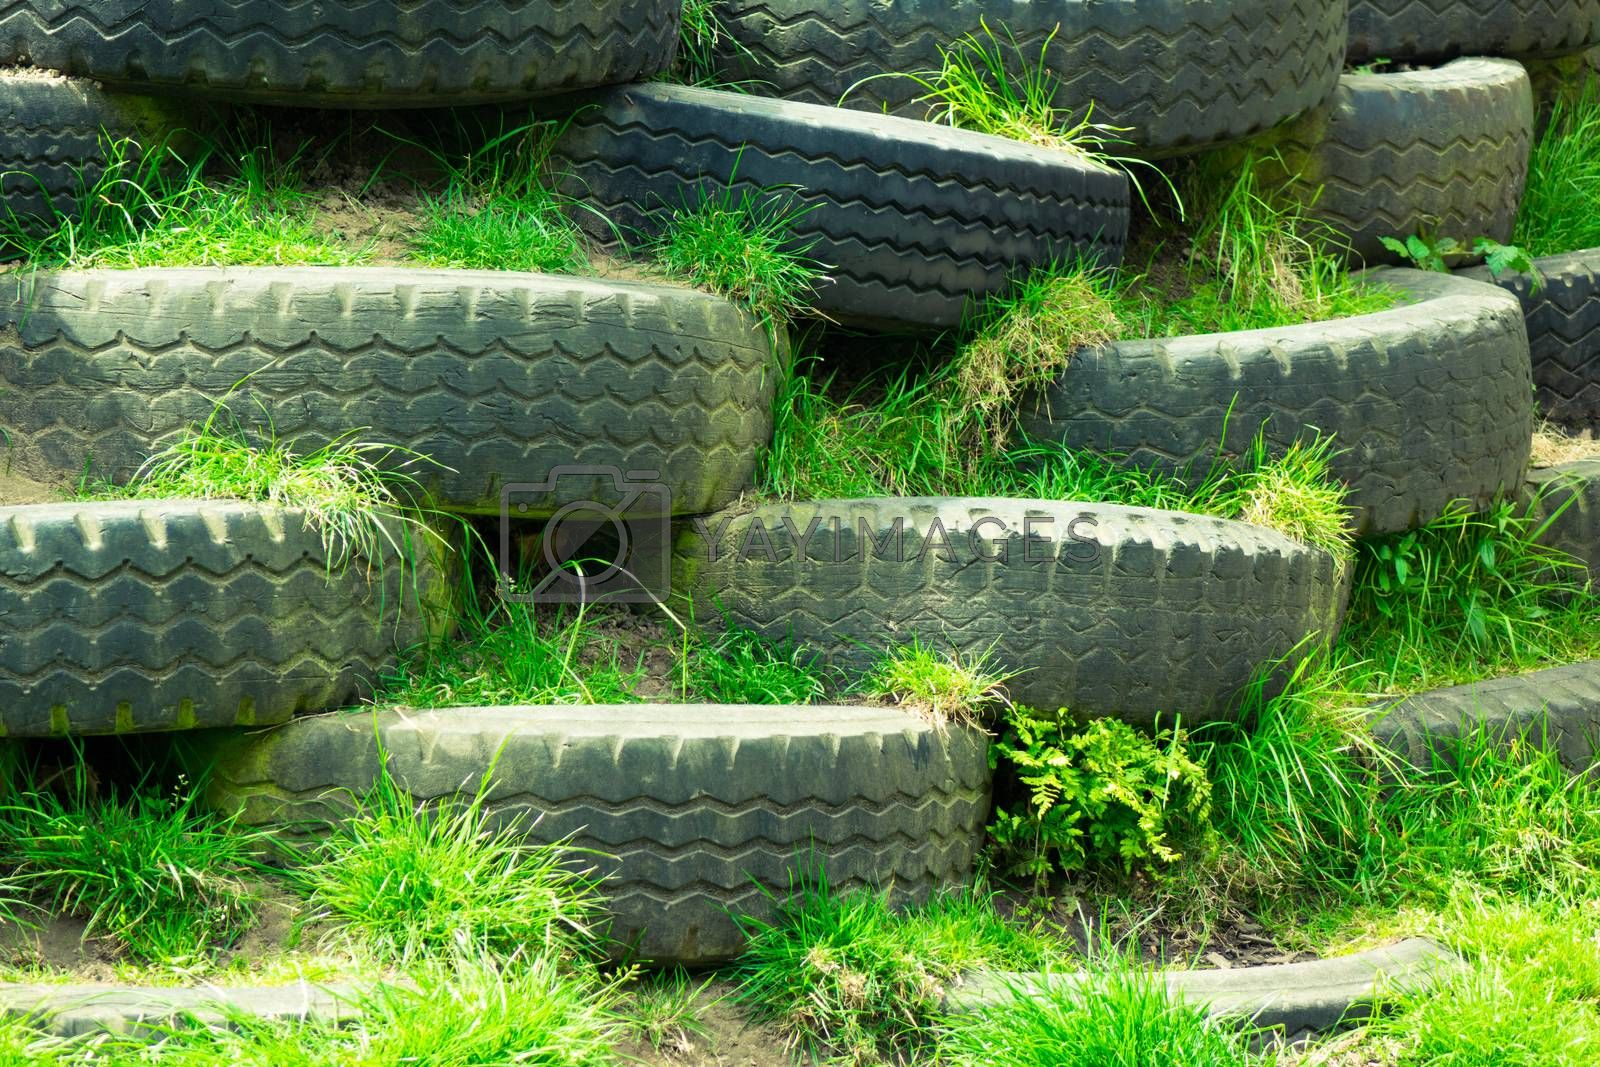 Climbing wall of old disused tyres in an outdoor children playground